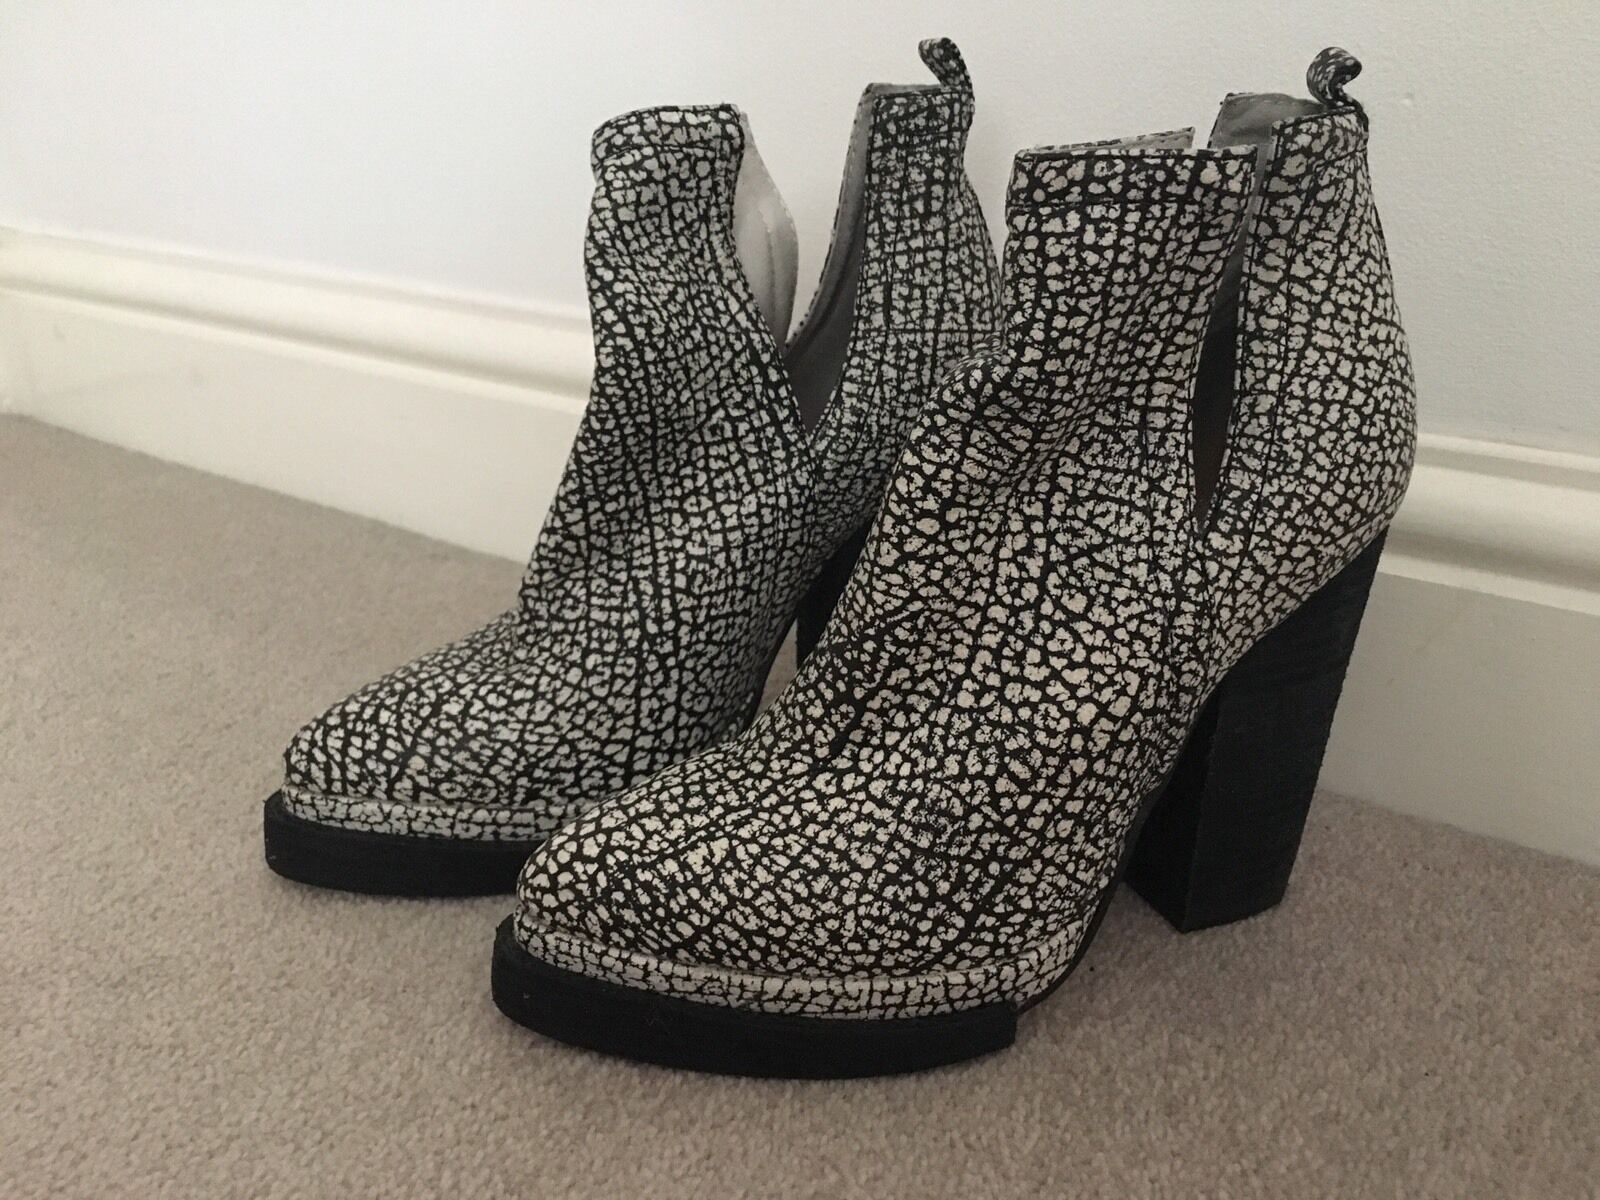 Jeffrey Campbell 'Whos Next' Monochrome Leather Boots (Size EU36, UK3) GENUINE